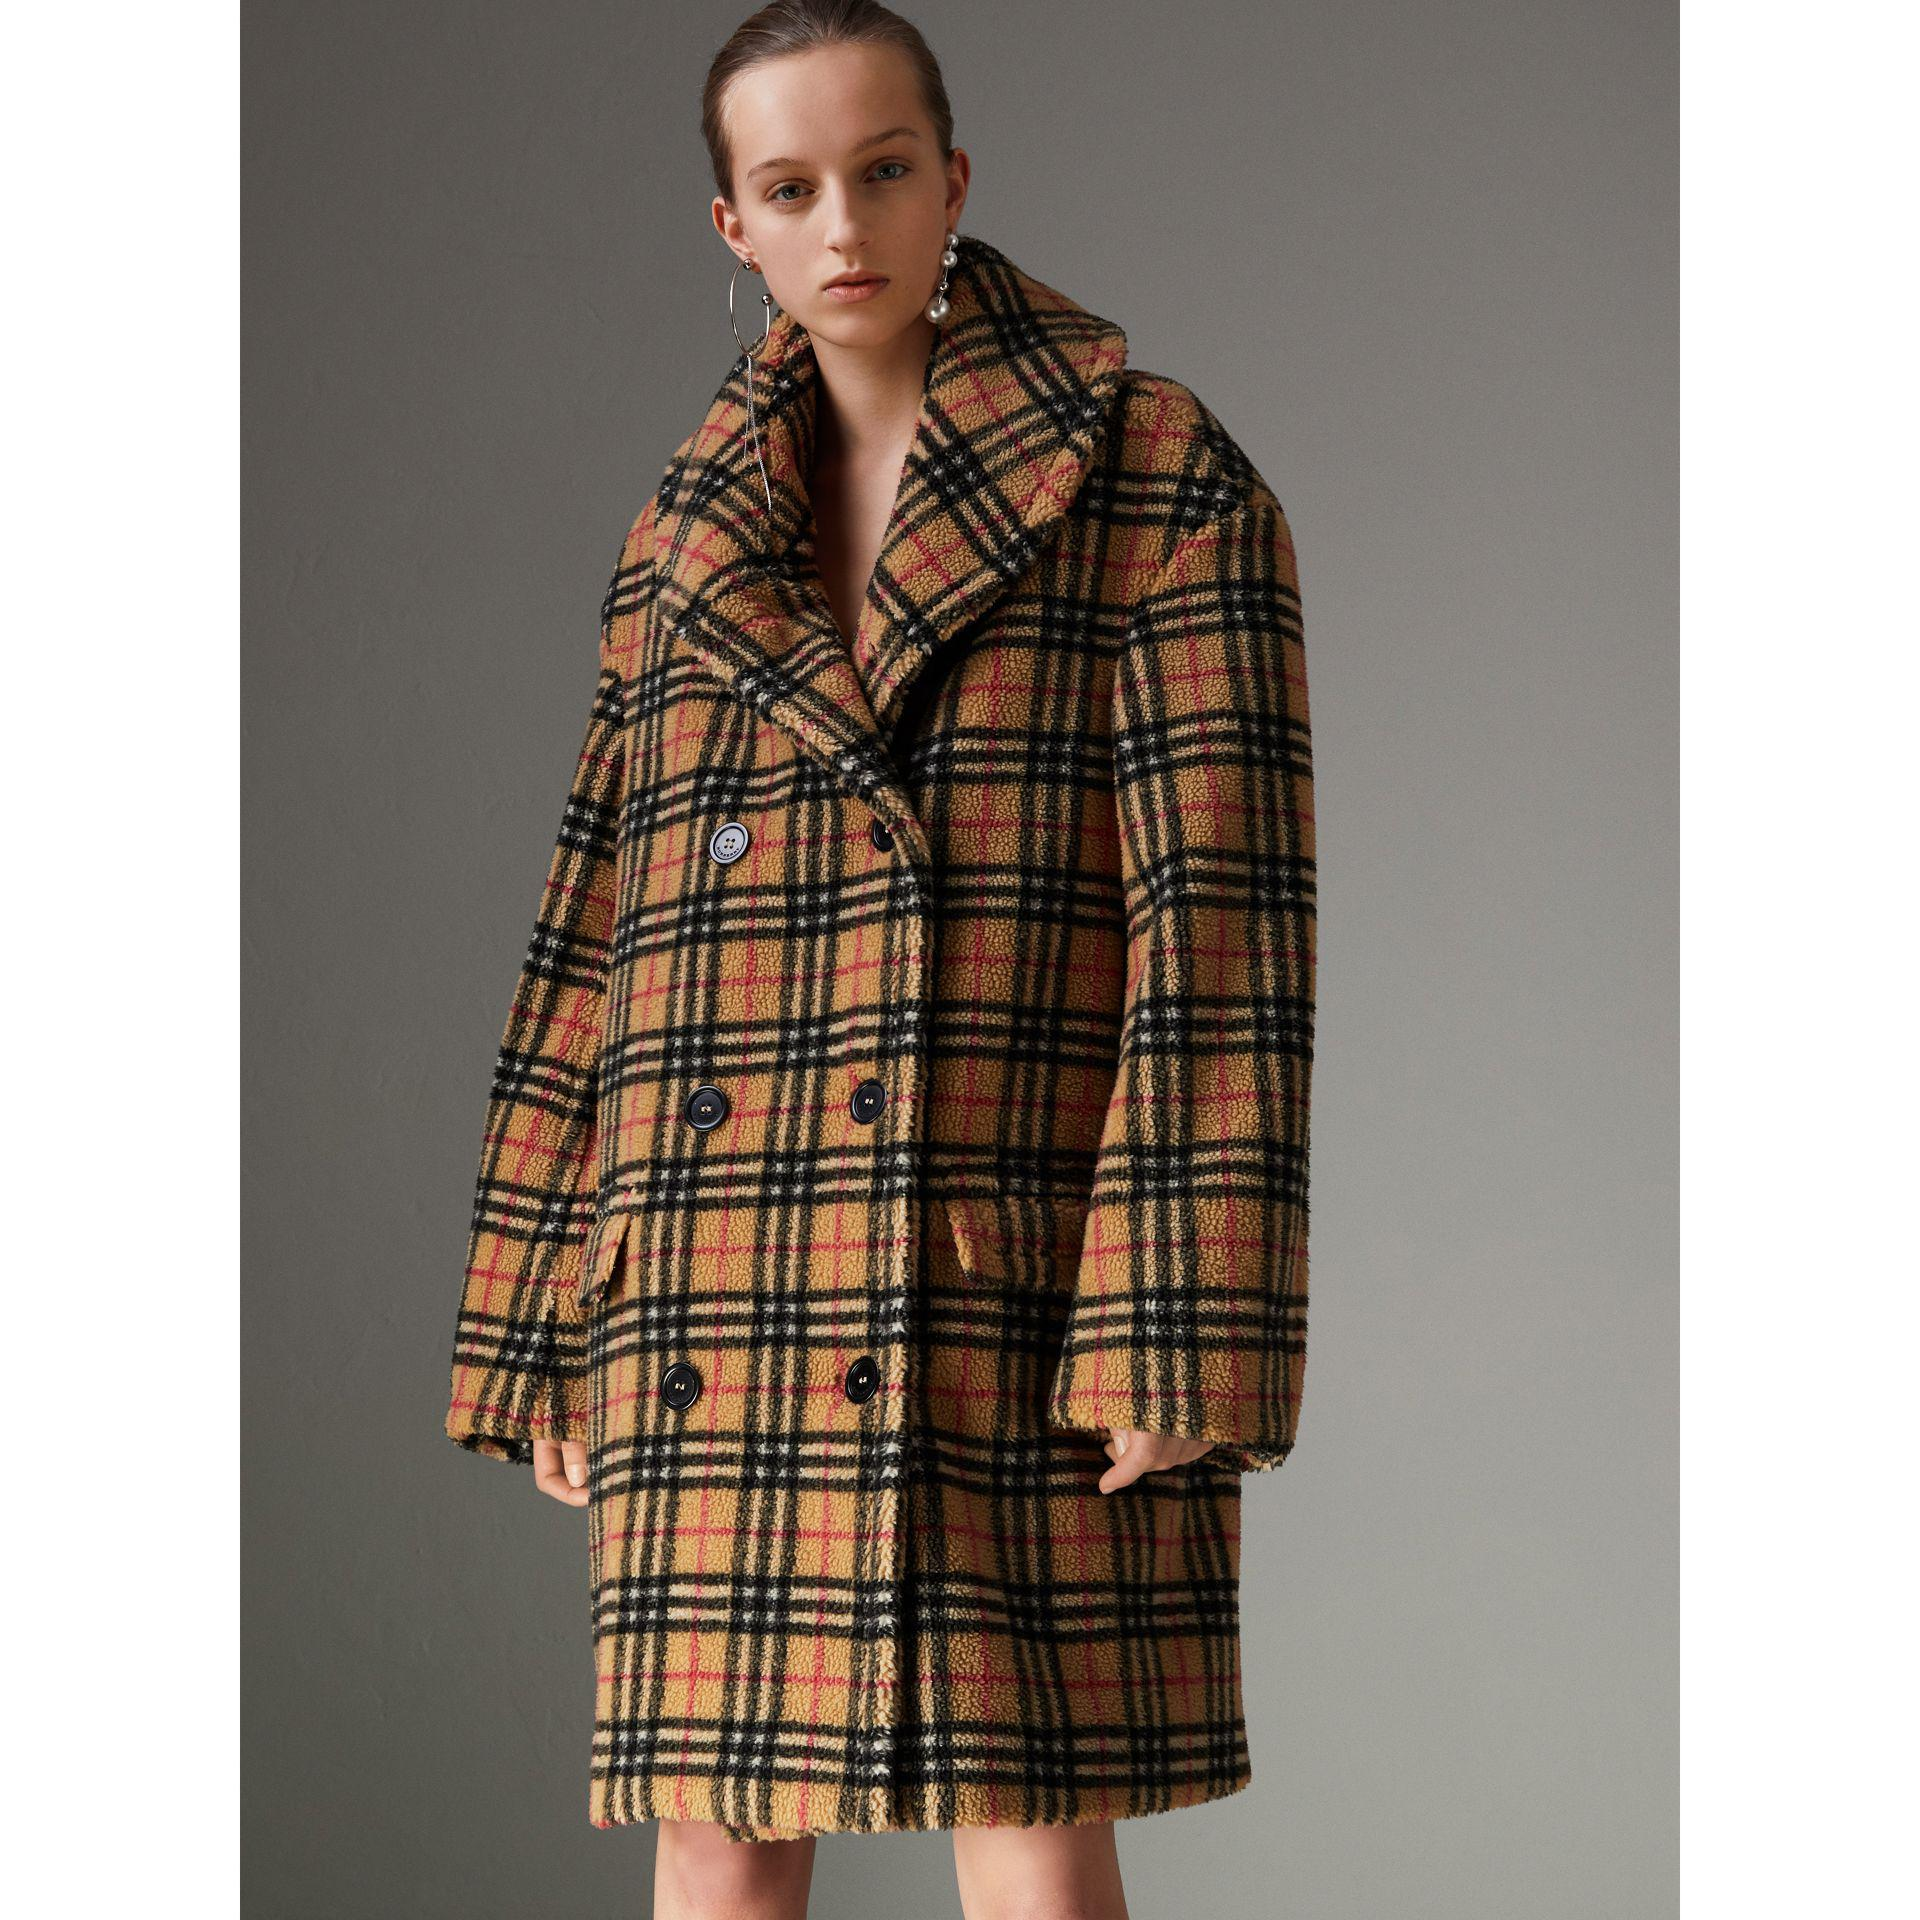 55d44d0c8c1 Burberry Vintage Check Faux Shearling Coat in Brown - Lyst